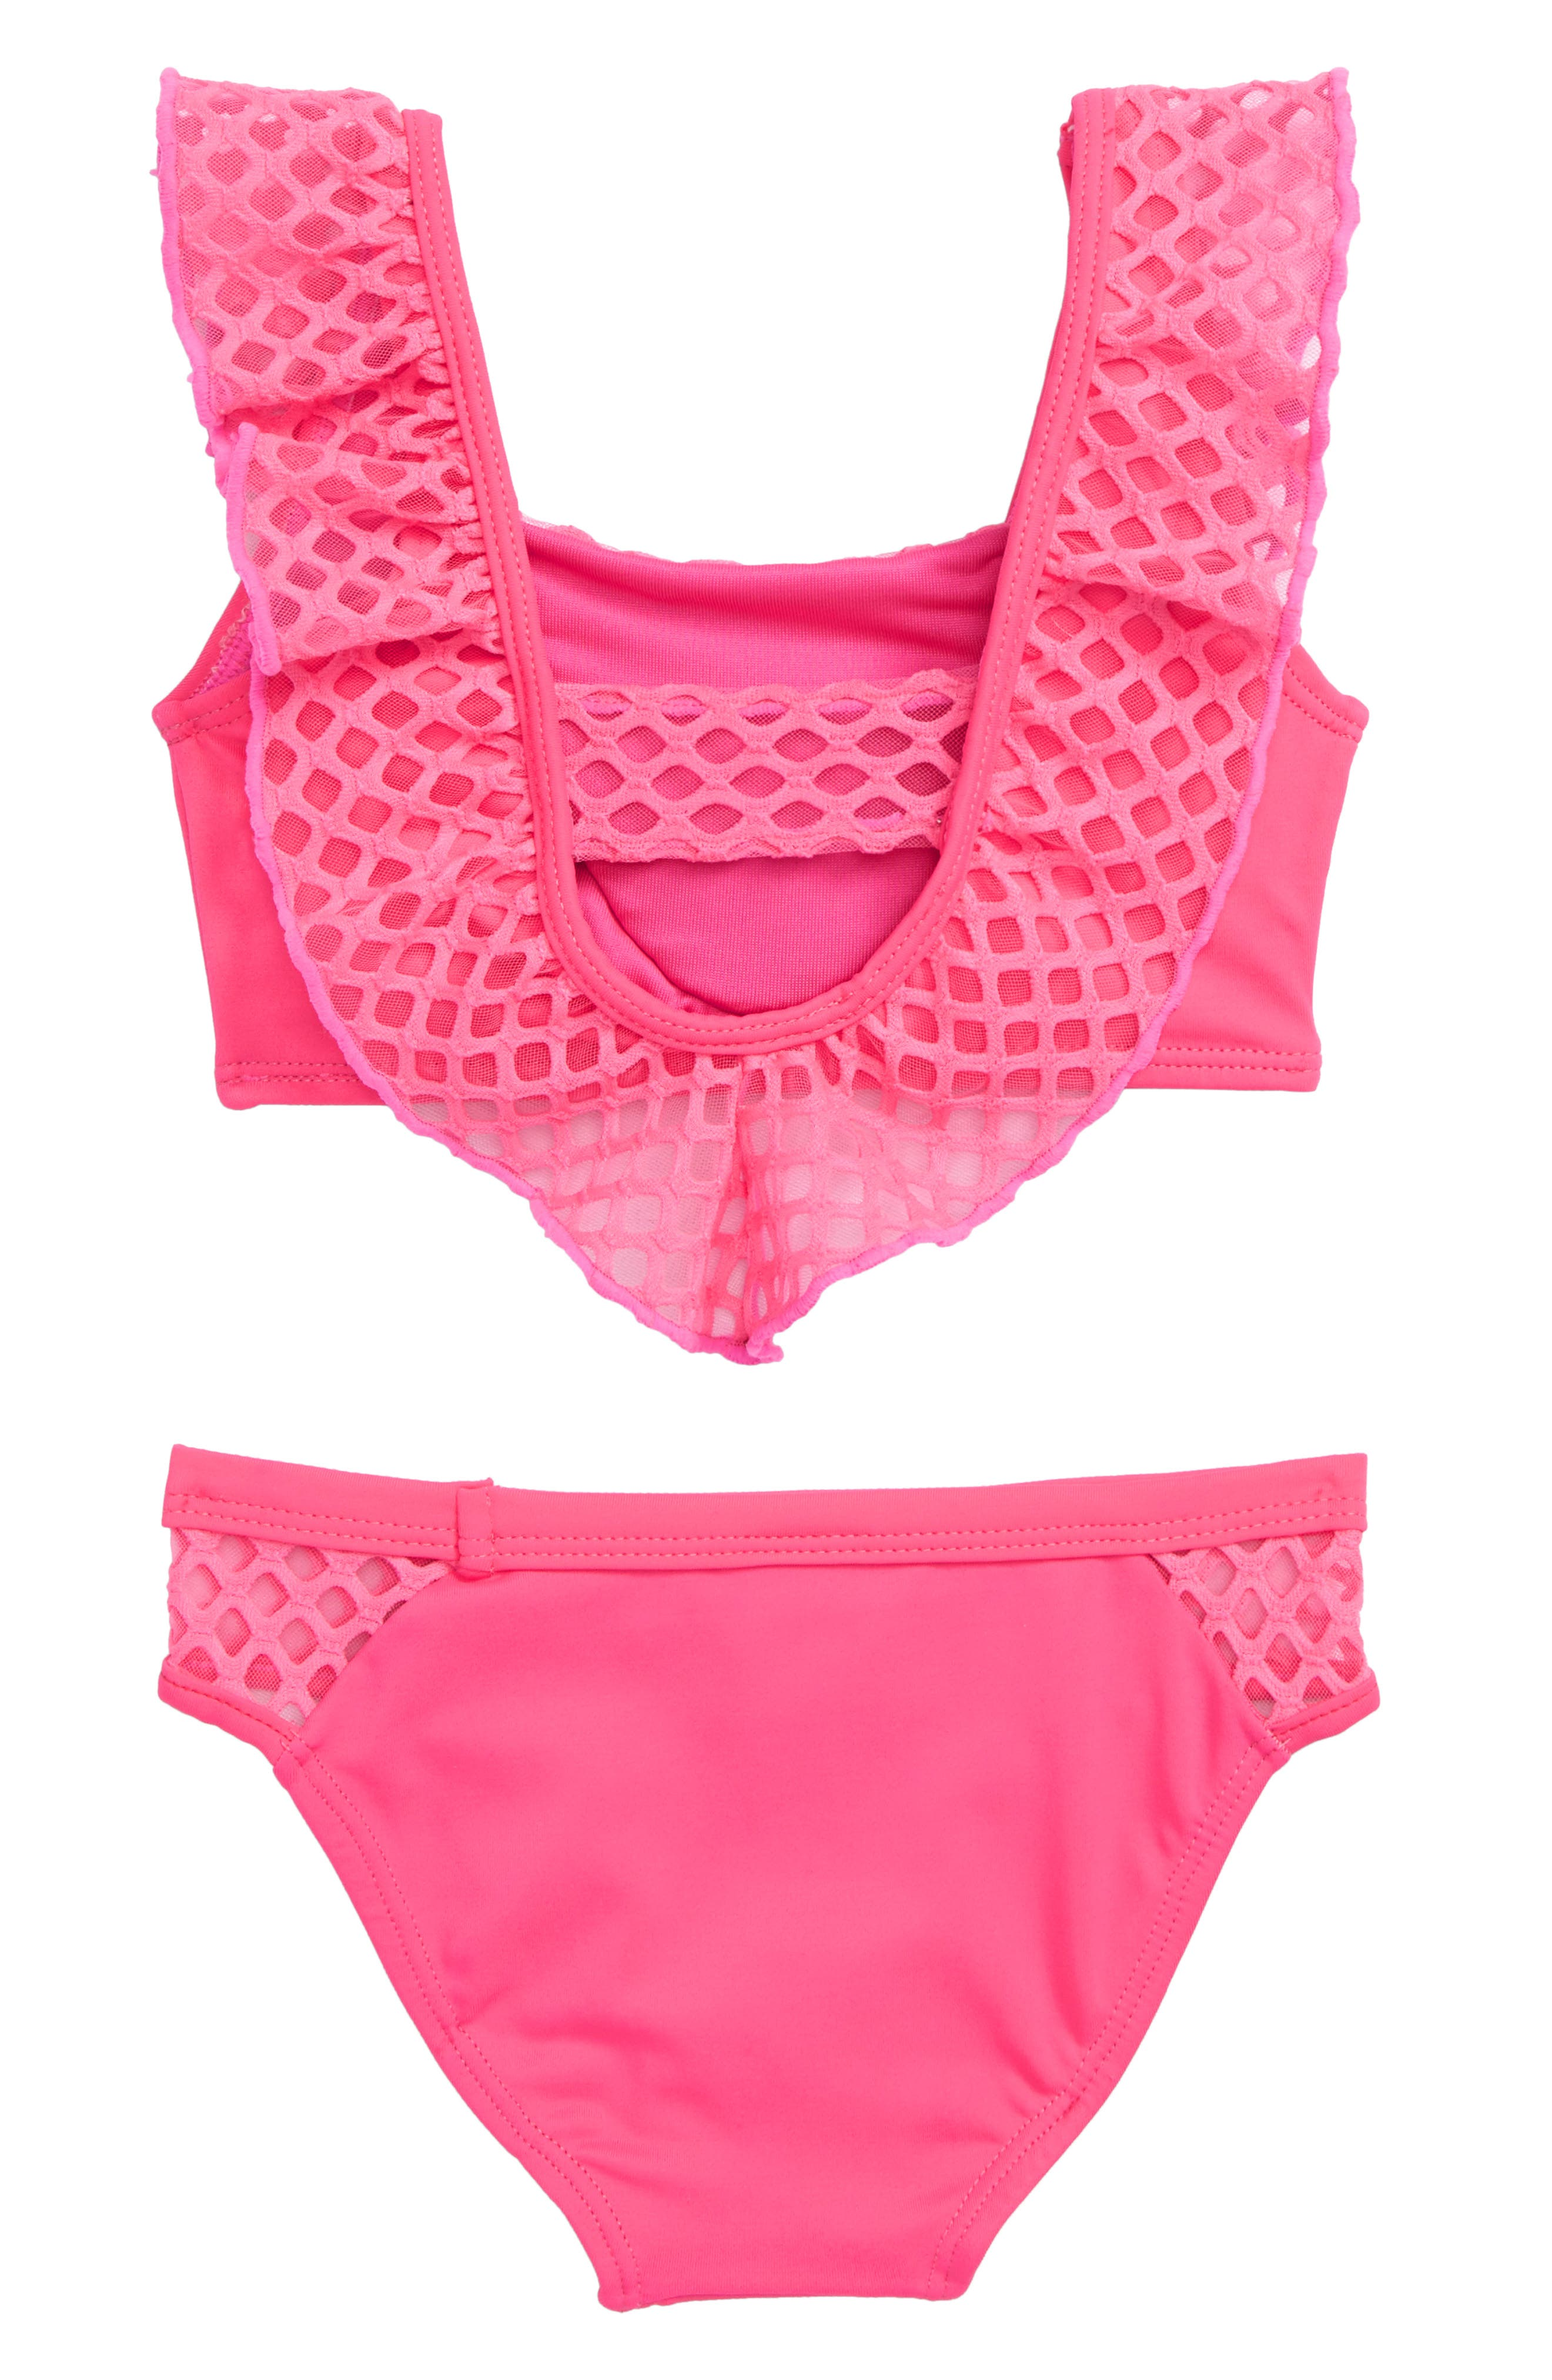 Blake Ruffle Two-Piece Swimsuit,                             Alternate thumbnail 2, color,                             678